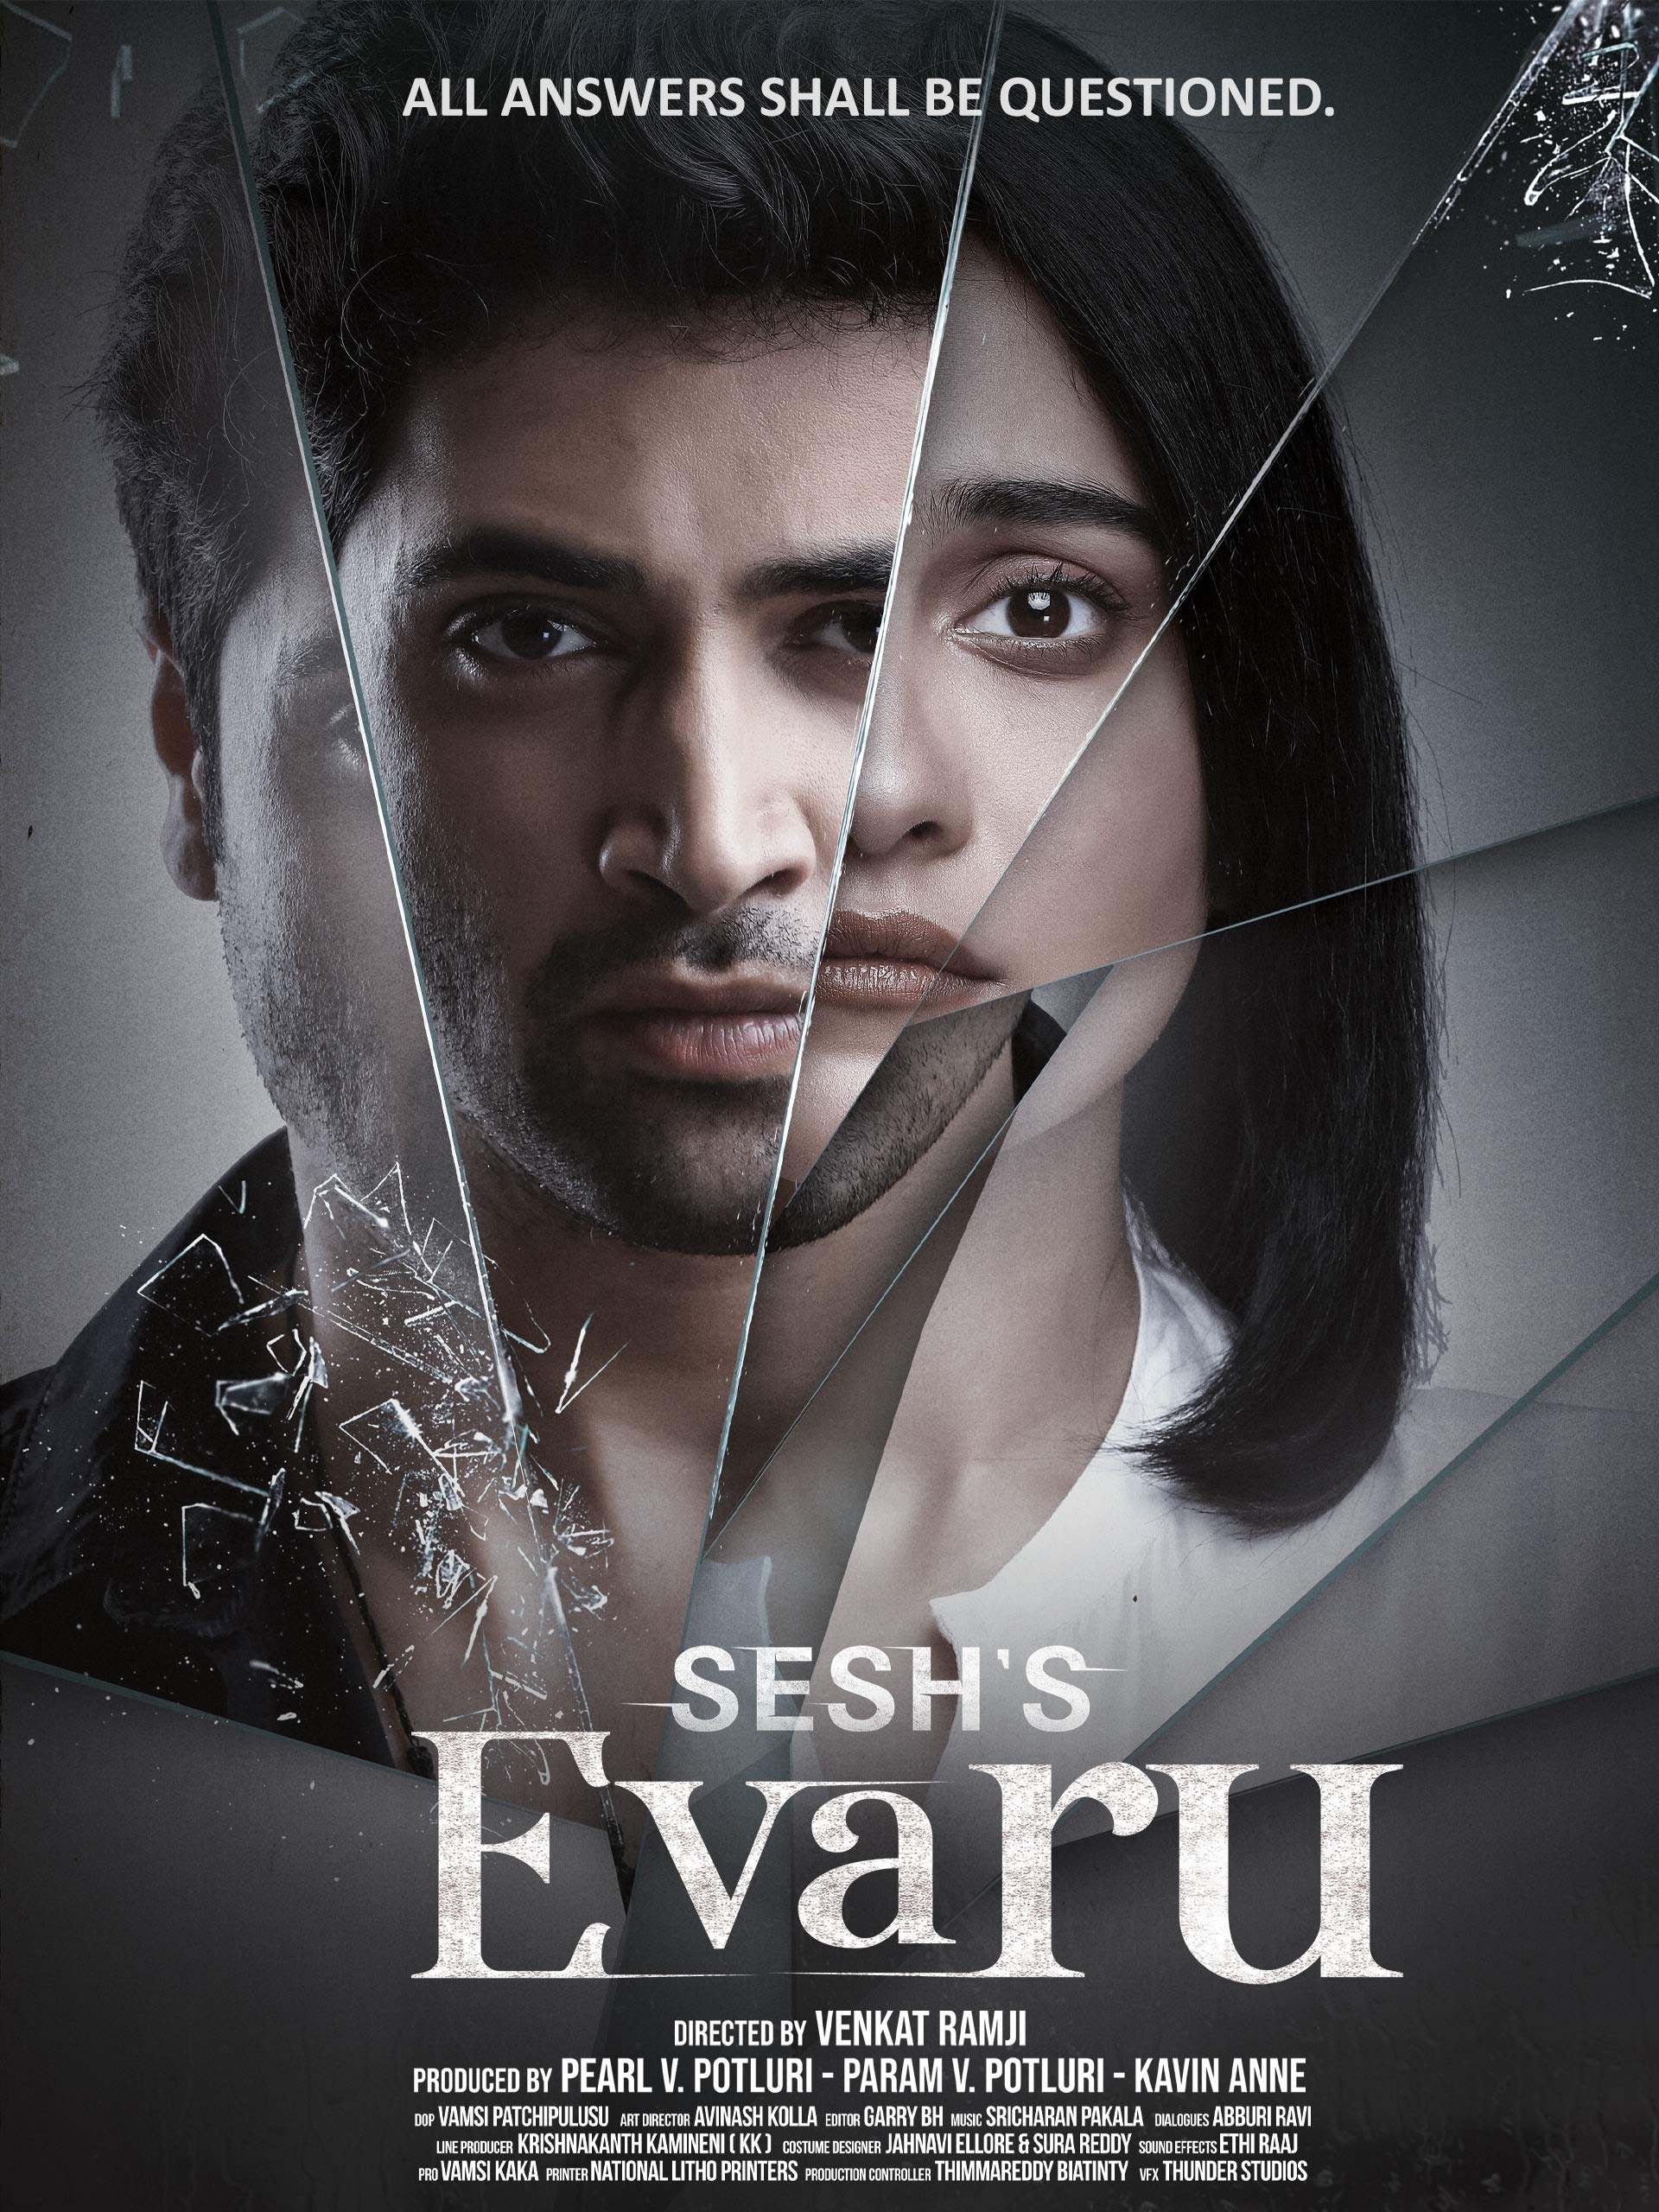 Amazon.com: Watch Evaru | Prime Video